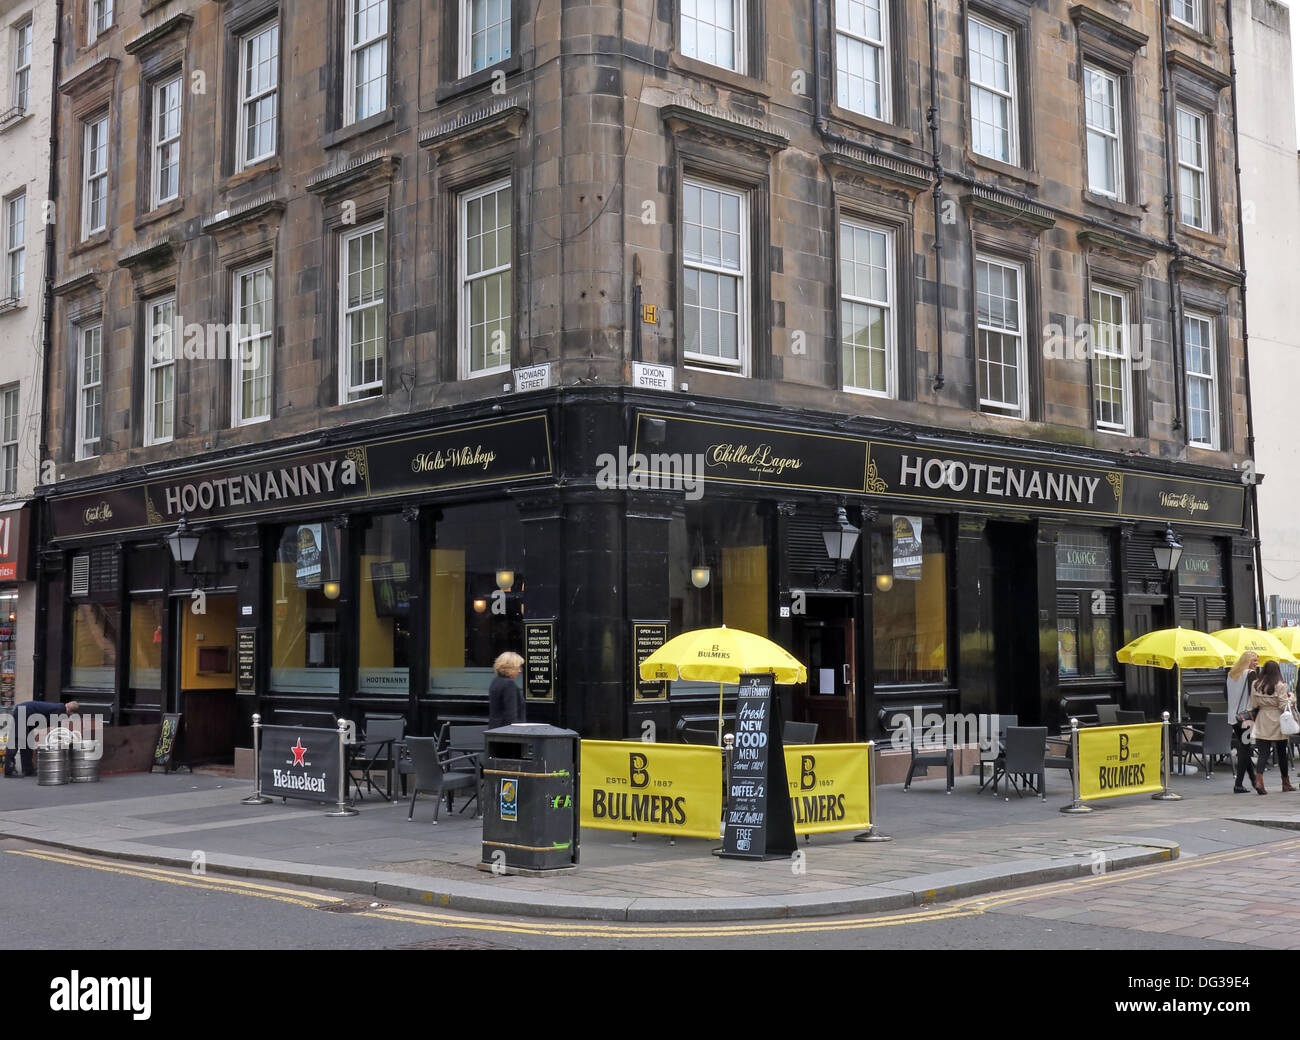 Hootenanny Bar, Howard st, Glasgow, Scotland, UK - Stock Image